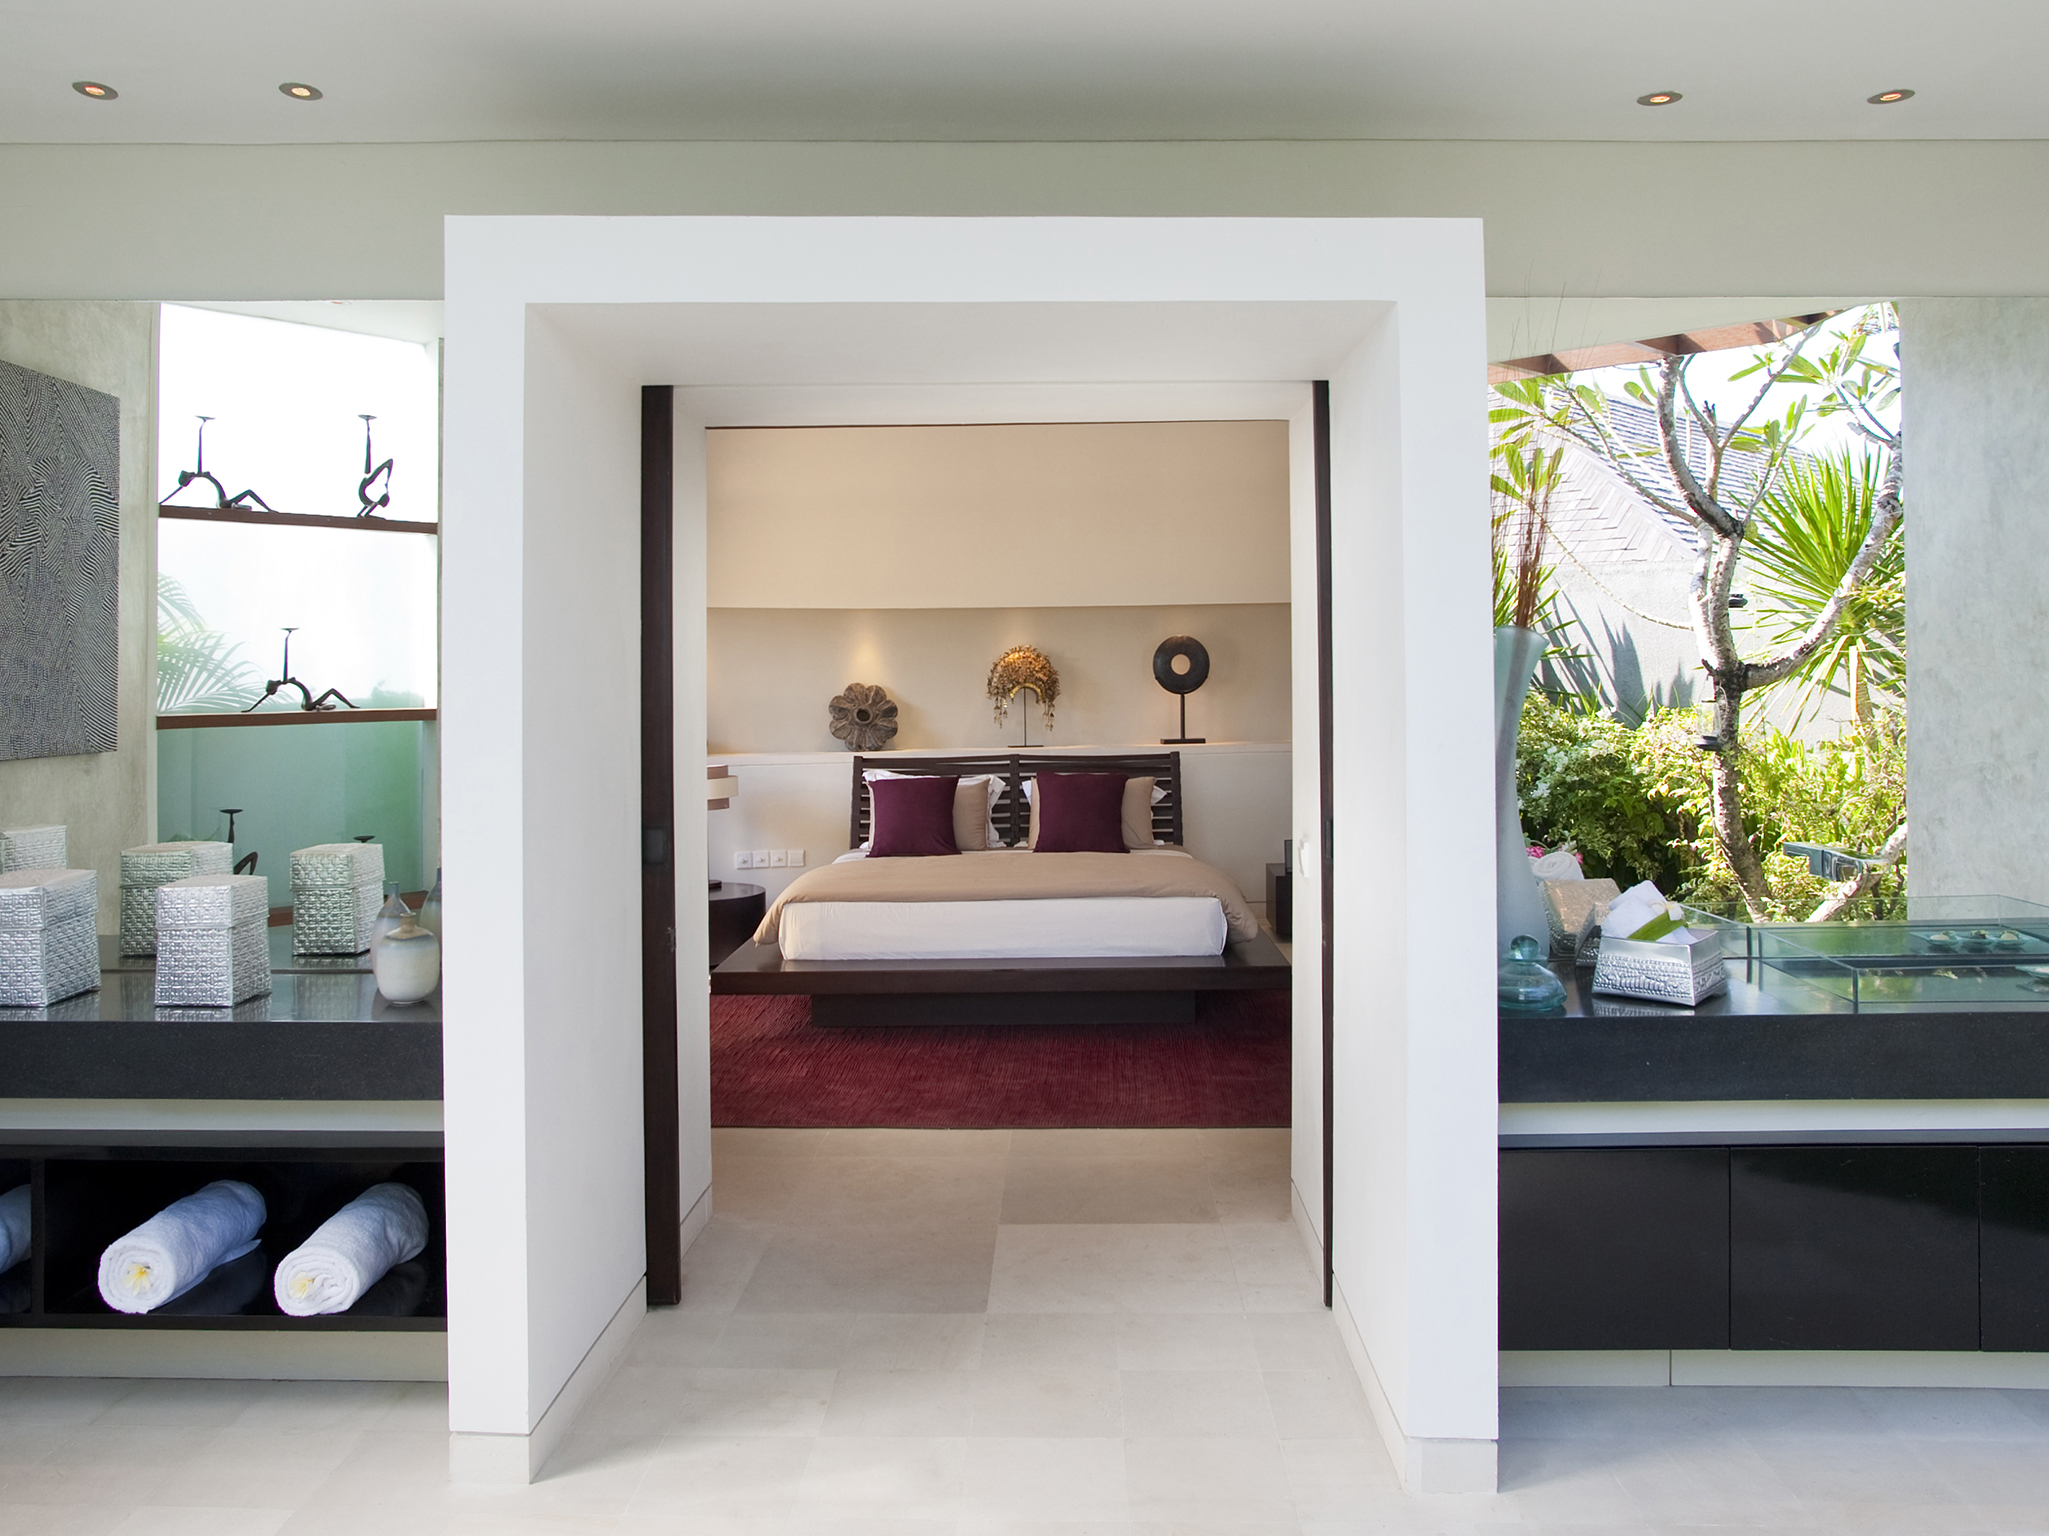 The Layar - 3 bedroom - Bedroom and bathroom - The Layar - Villa 12 (3BR), Seminyak, Bali